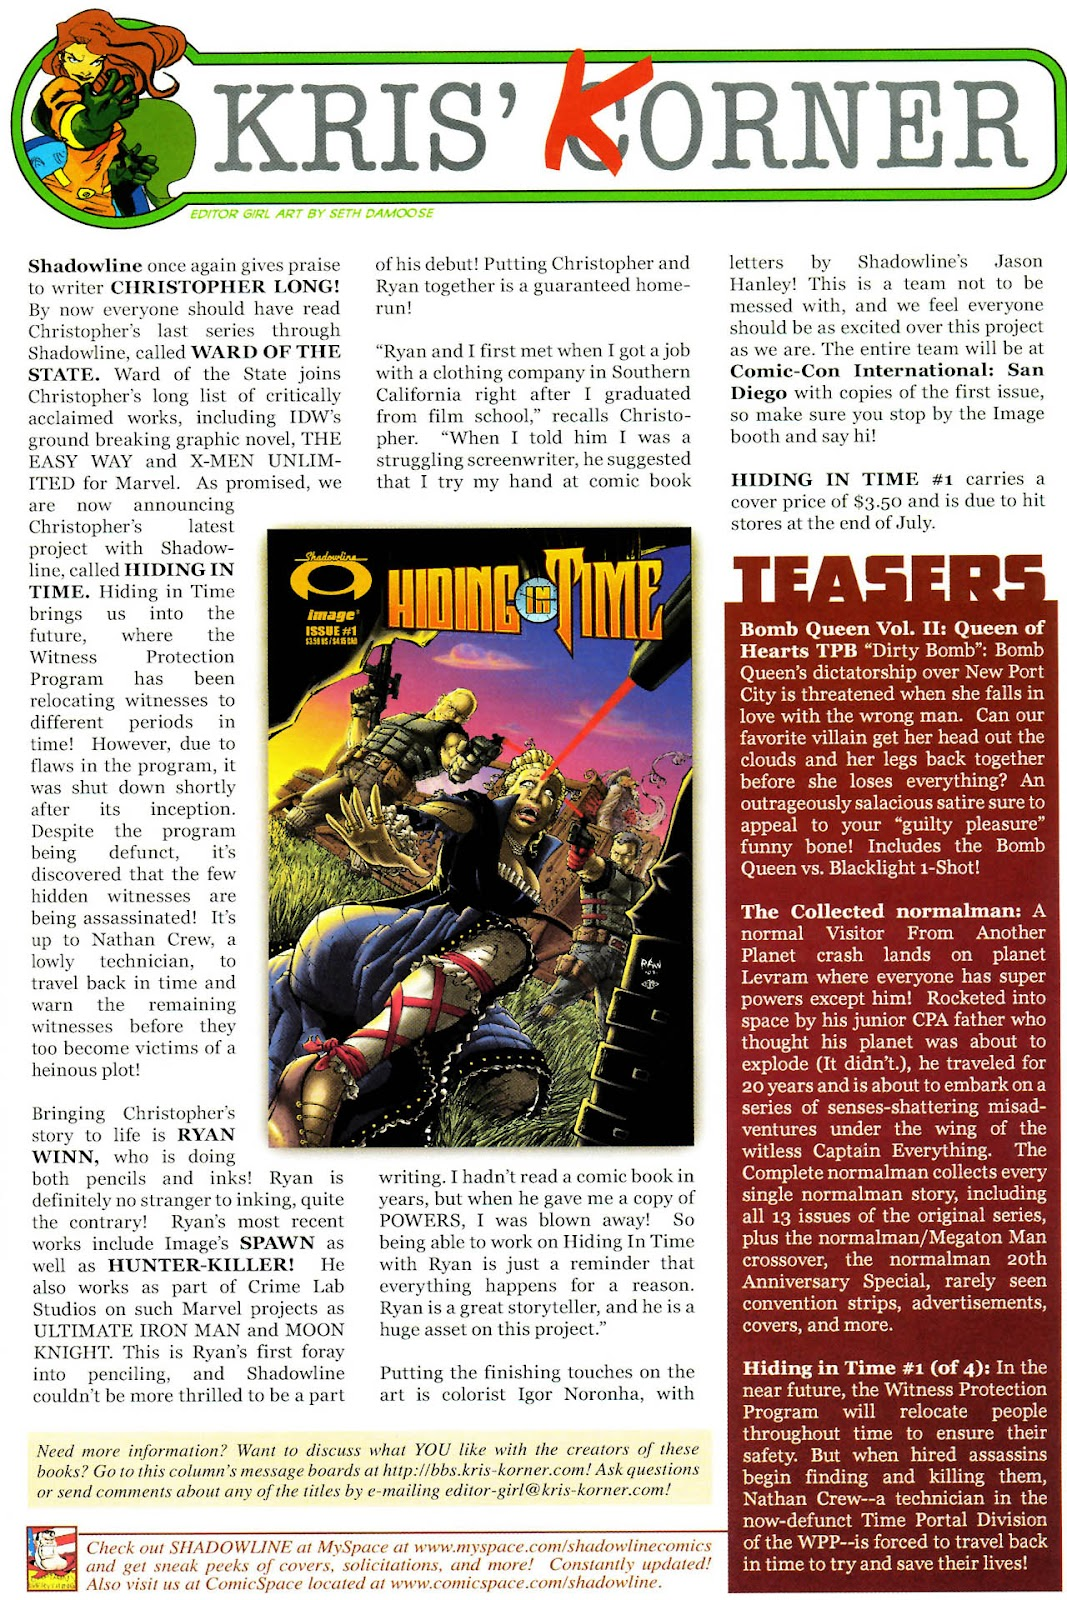 Read online Ward Of The State comic -  Issue #2 - 26